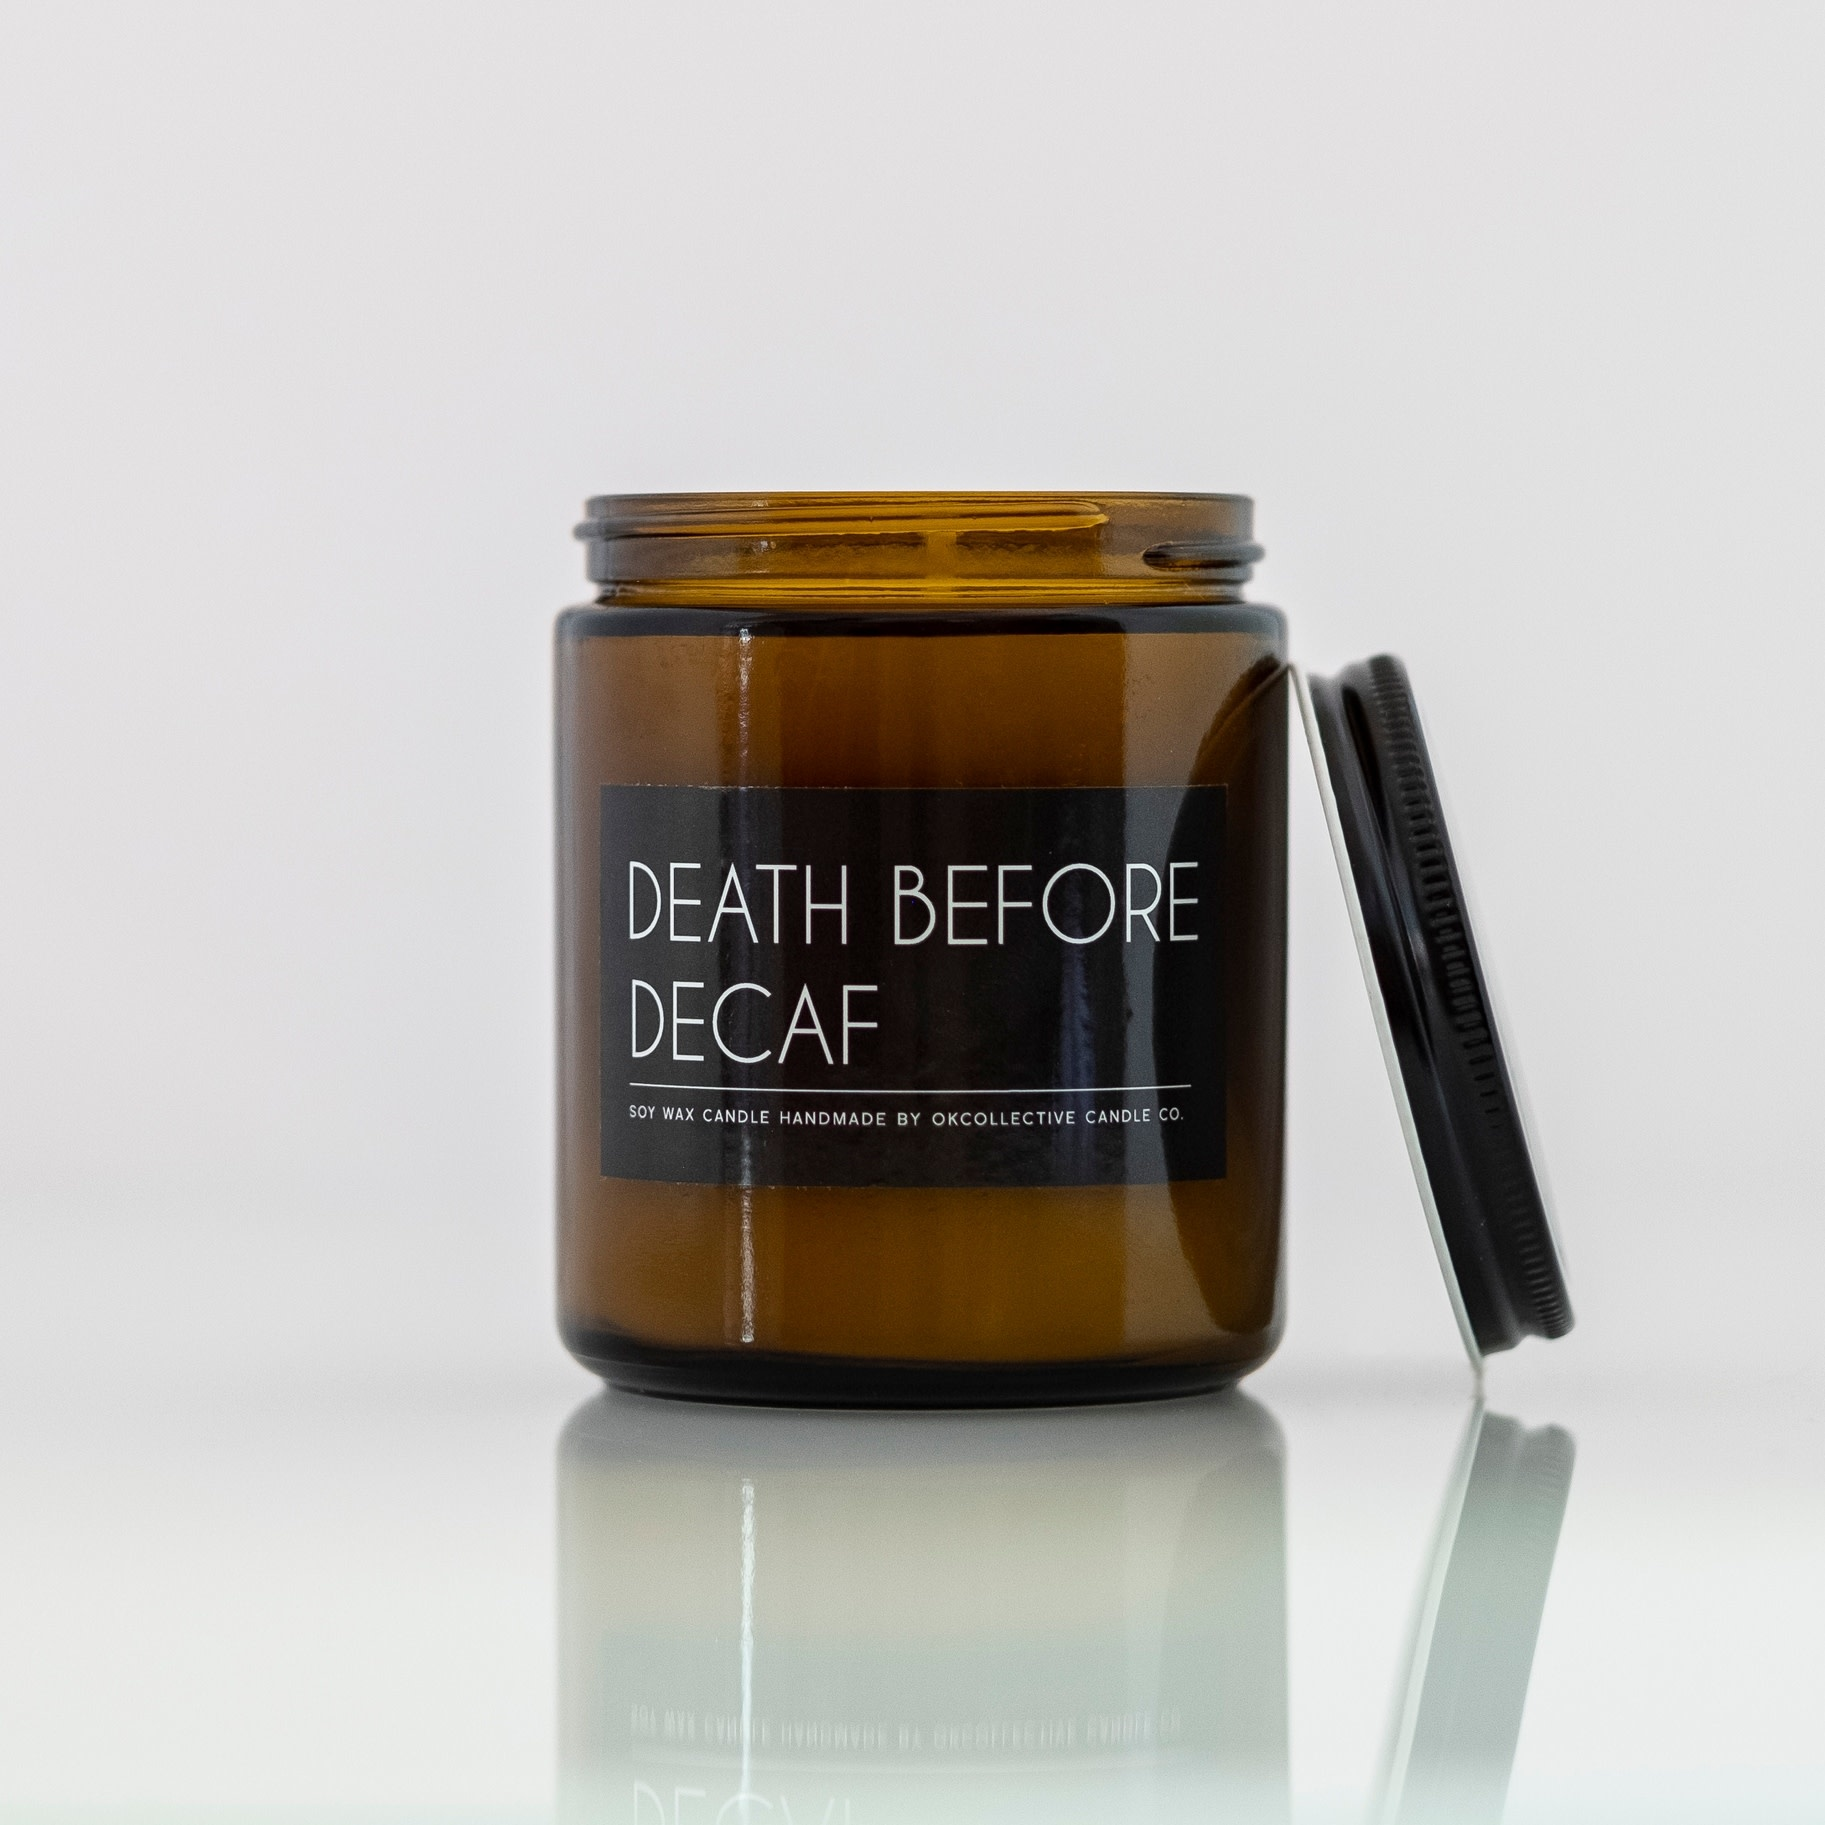 Death Before Decaf 8oz Candle